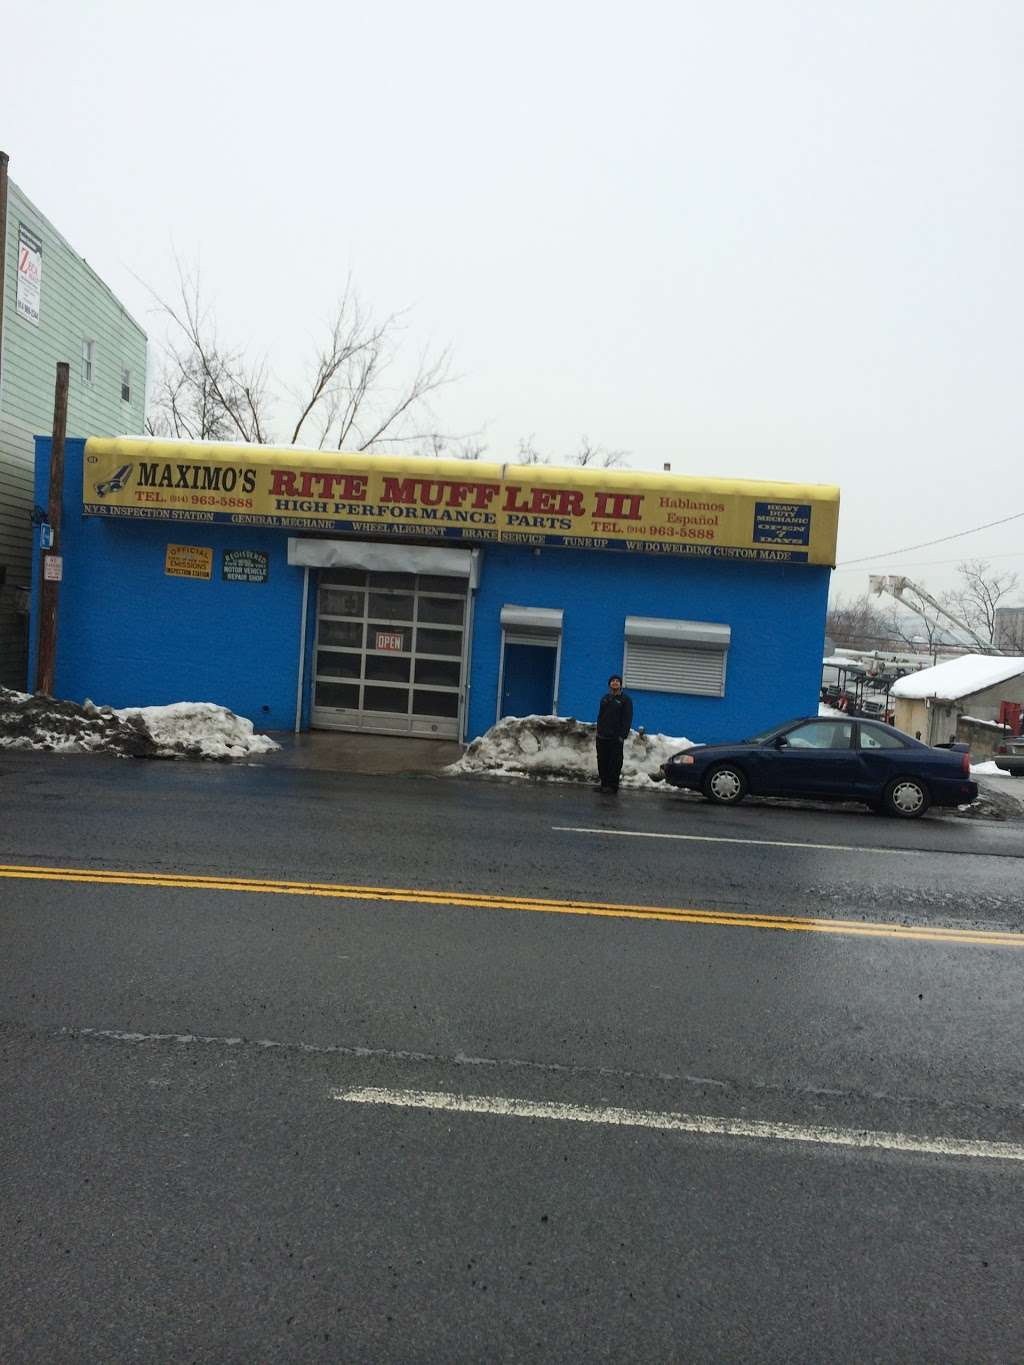 Maximos Rite Muffler II Inc - car repair  | Photo 5 of 9 | Address: 2379 E Tremont Ave, The Bronx, NY 10462, USA | Phone: (718) 239-9818